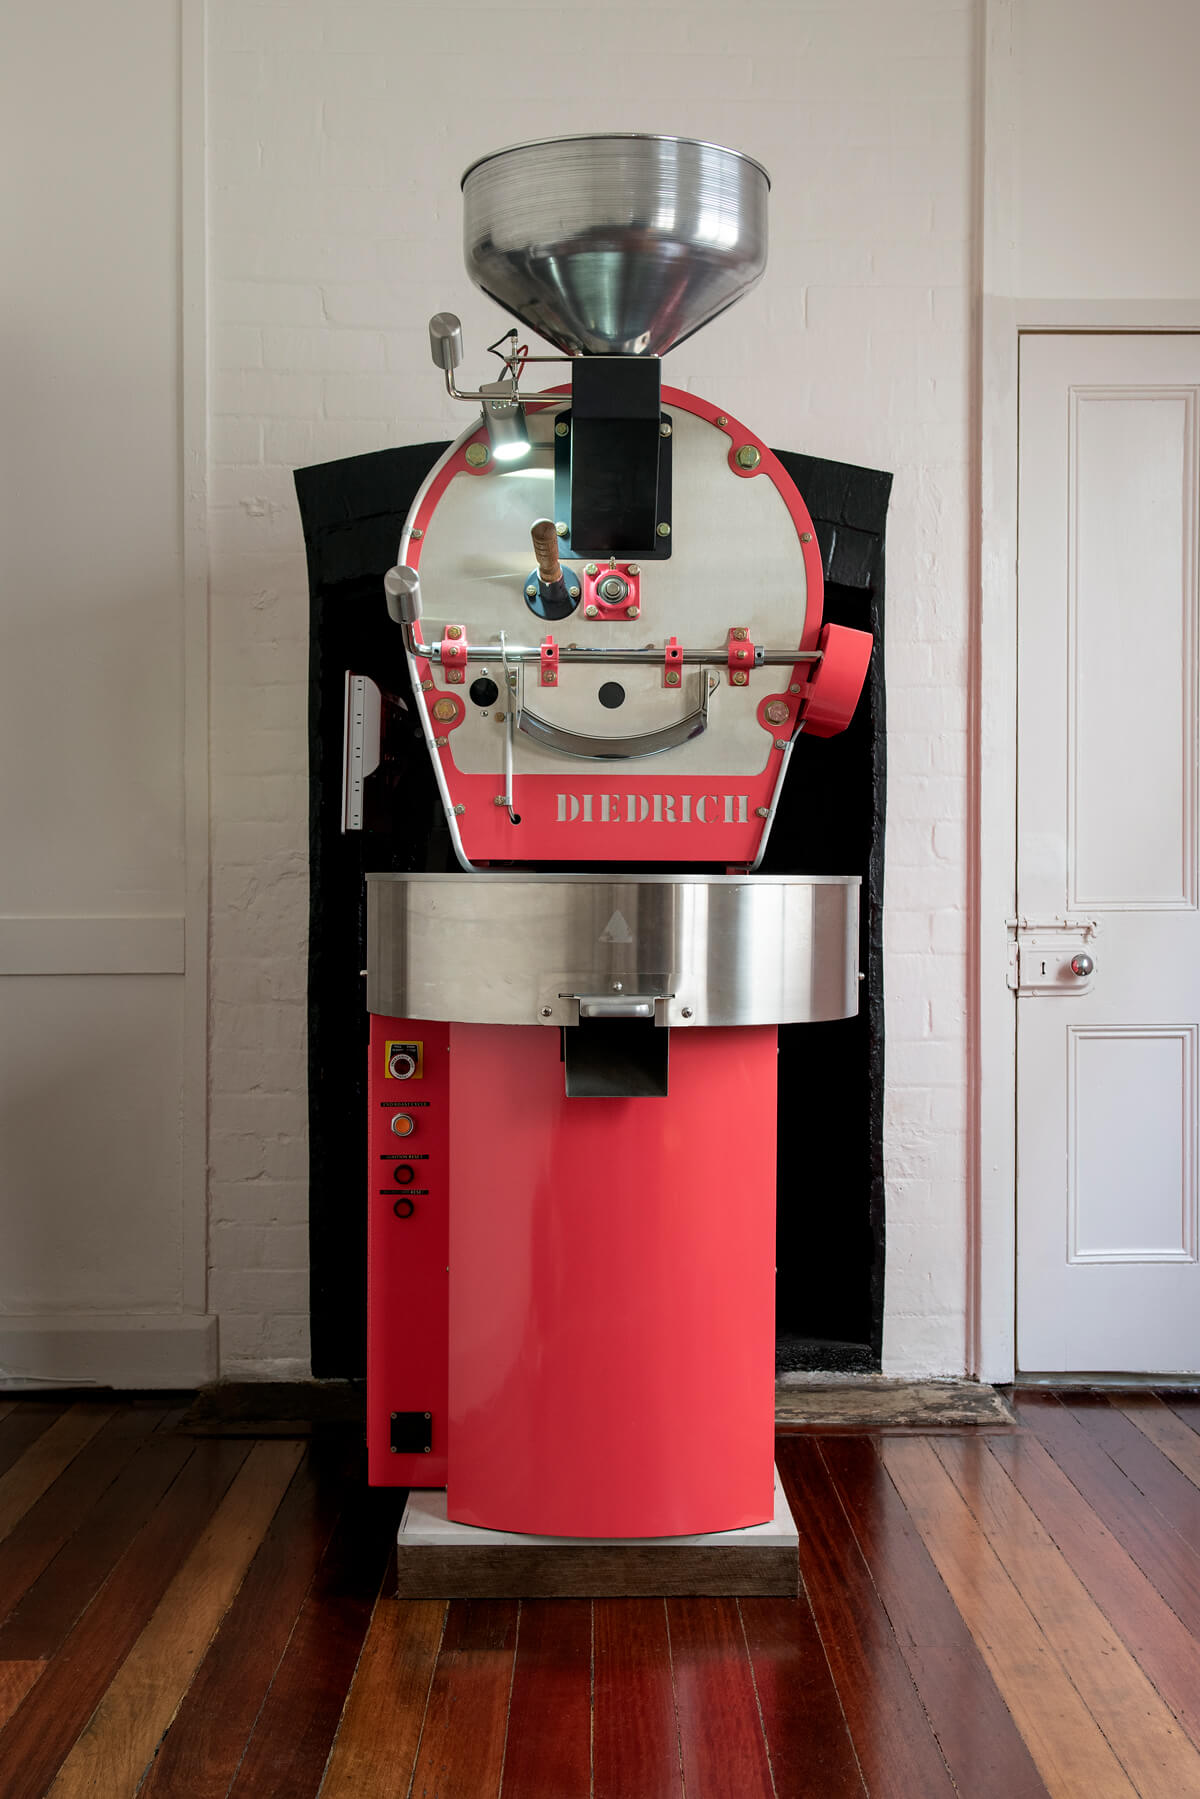 Renowned as one of the cleanest, most environmentally friendly coffee roasters in the world is our hot pink Diedrich